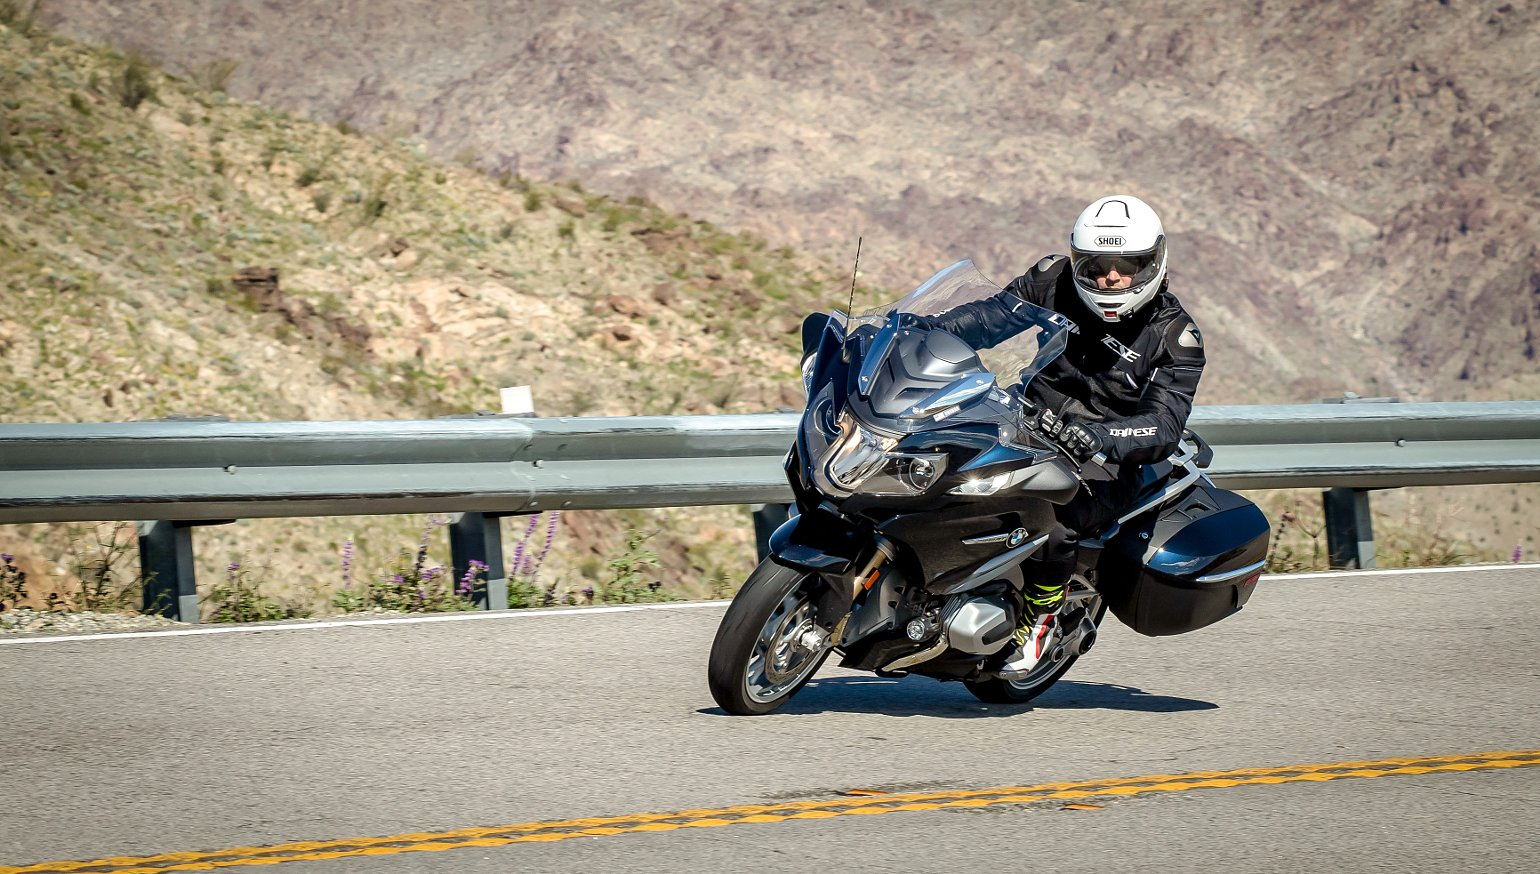 2019 Bmw R 1250 Rt First Ride Review Revzilla